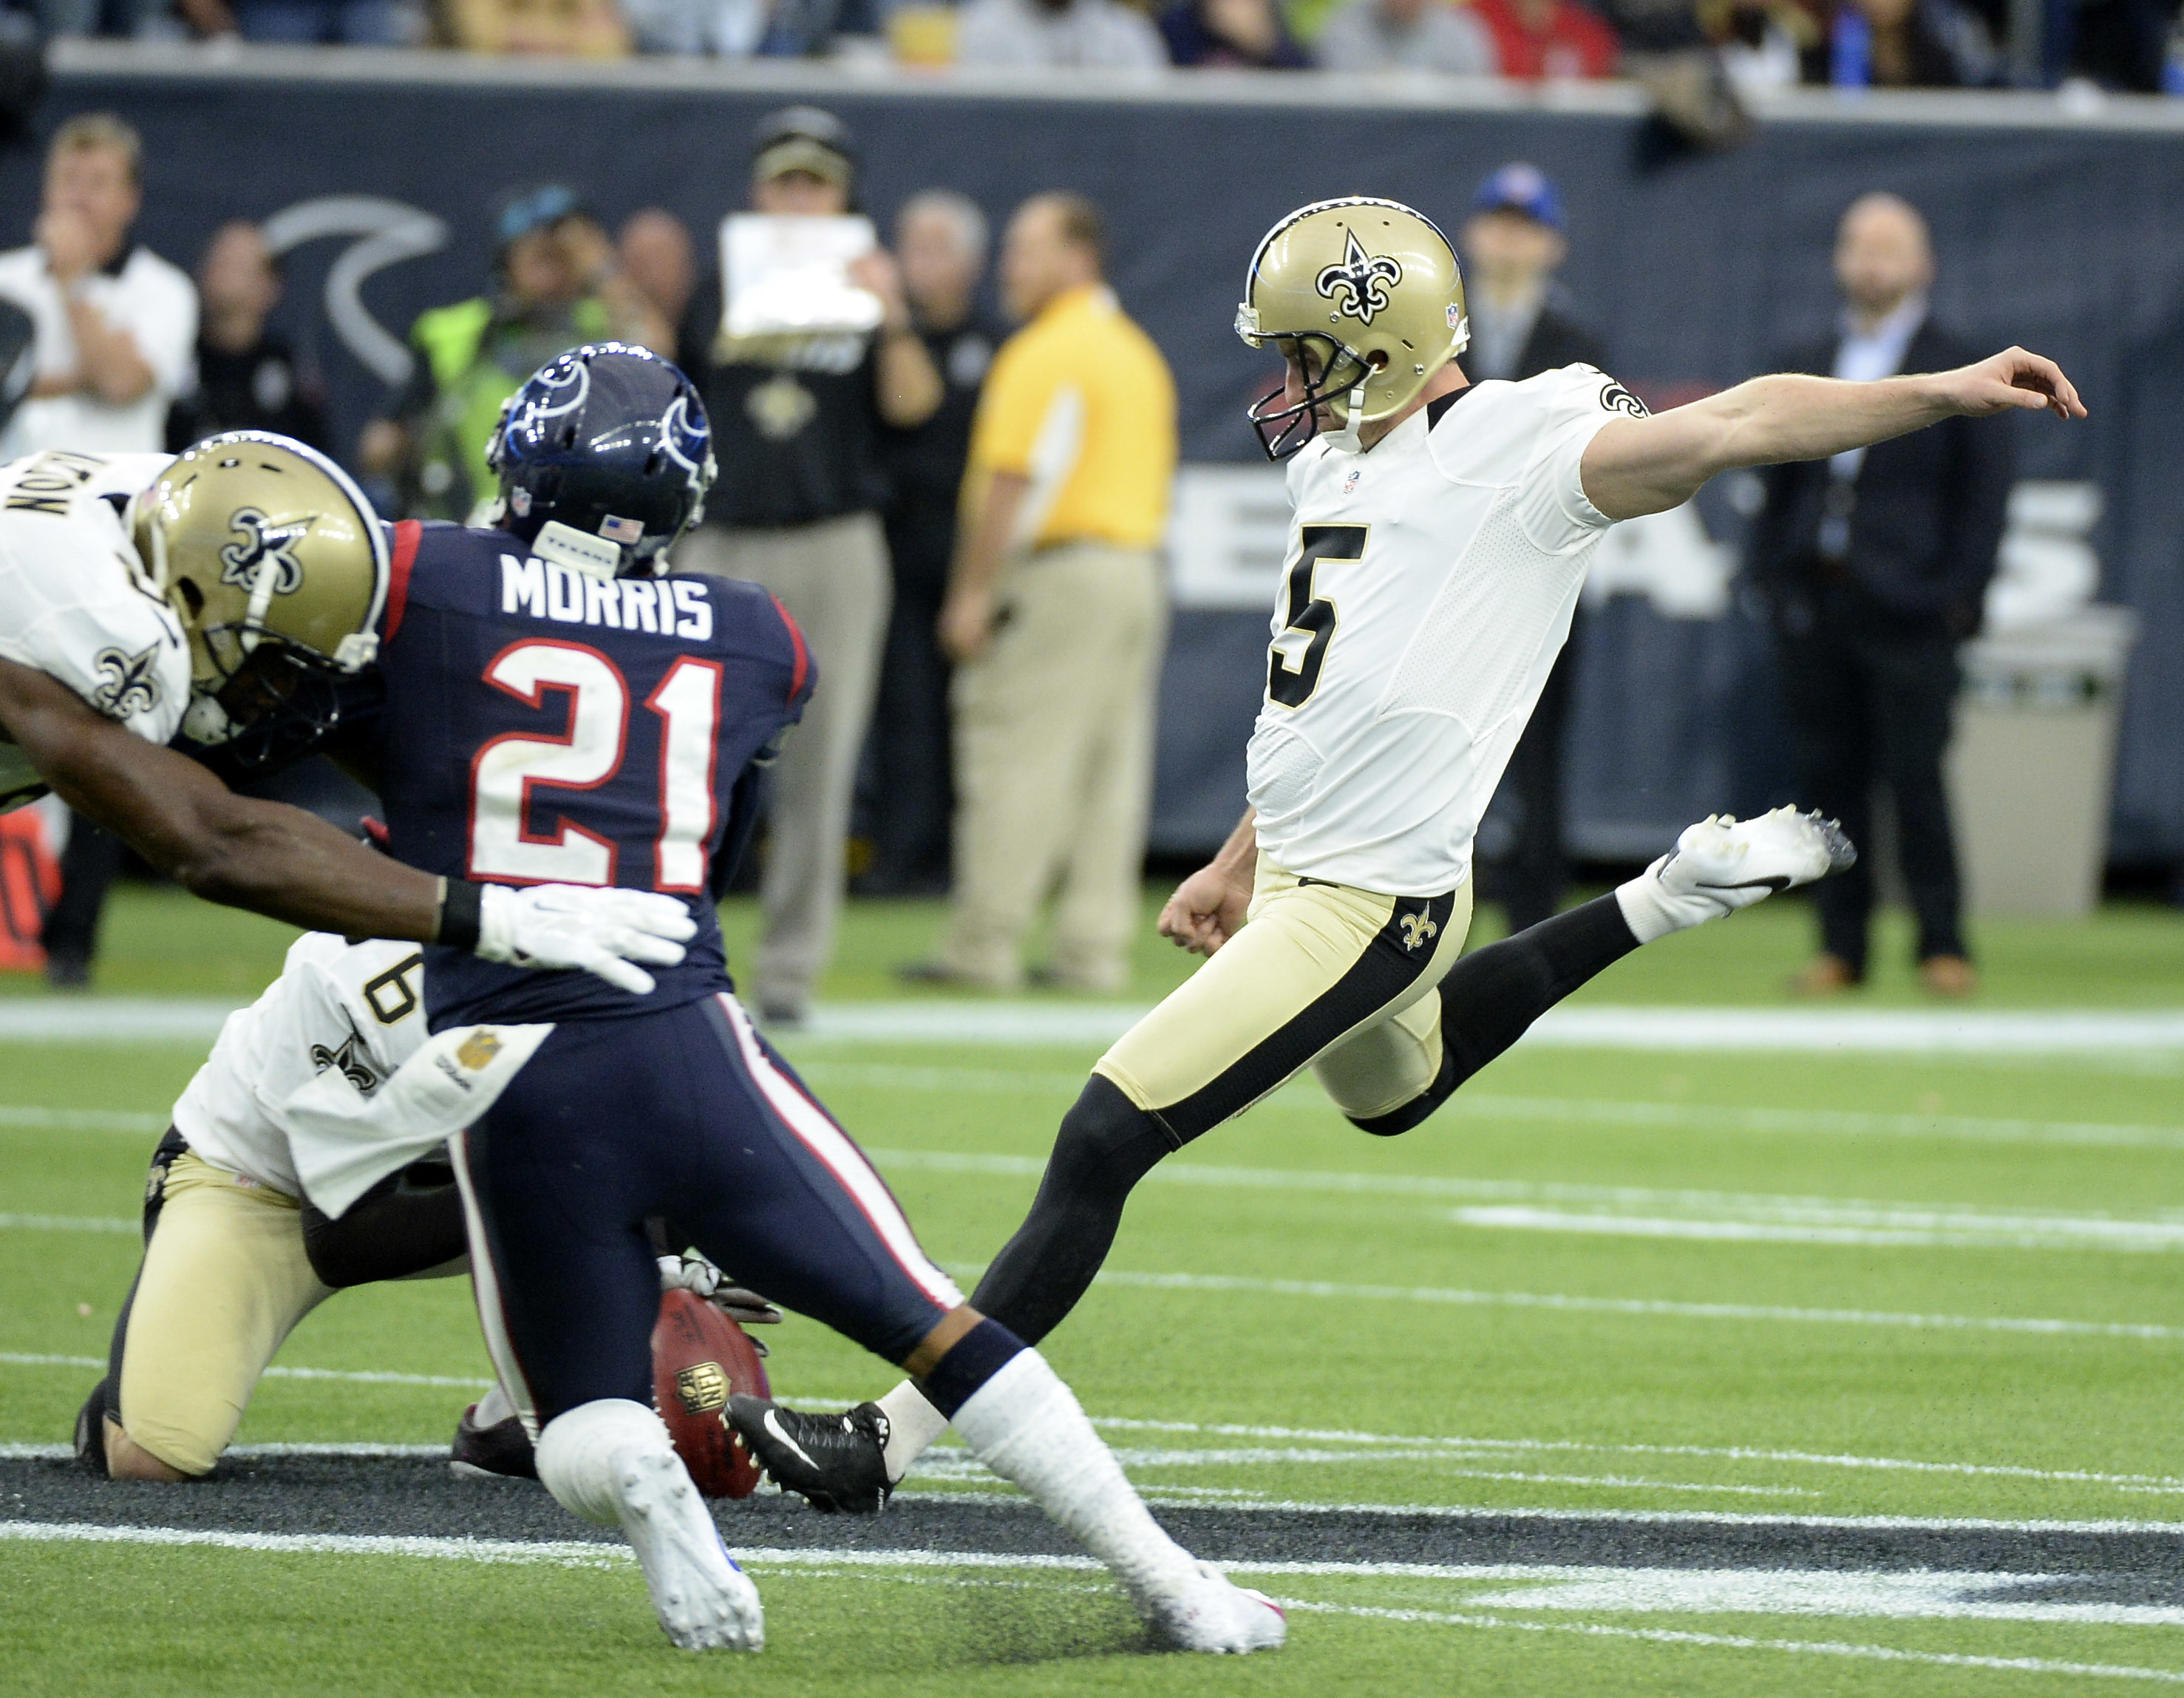 FILE - In this Nov. 29, 2015, file photo, then-New Orleans Saints kicker Kai Forbath (5) kicks a 57-yard field goal during the second quarter of an NFL football game against the Houston Texans, in Houston. Another loss has triggered another round of chang